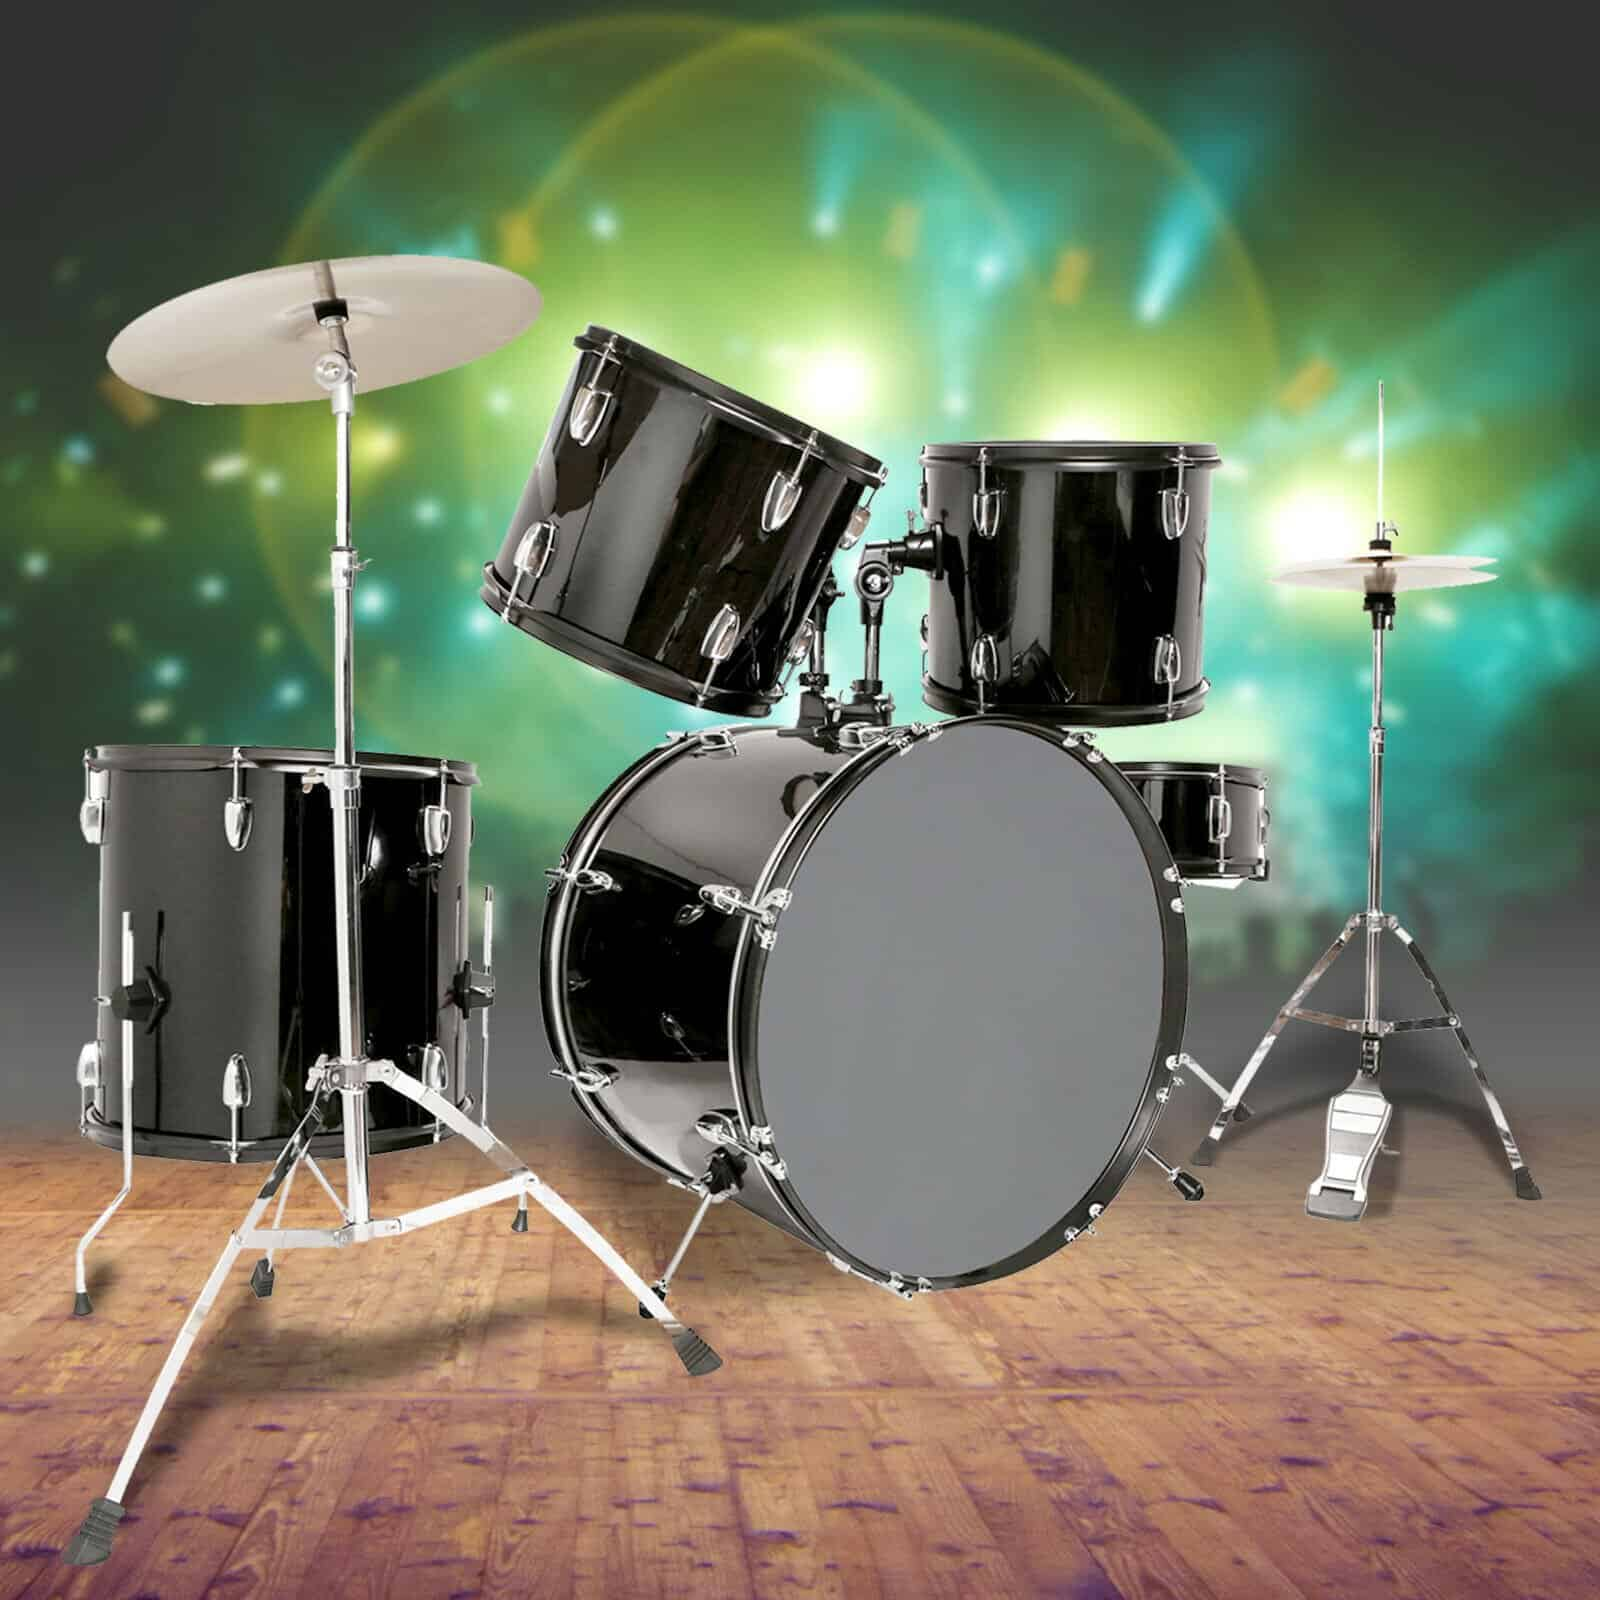 Best Starter Drum Set for a 9 Year Old